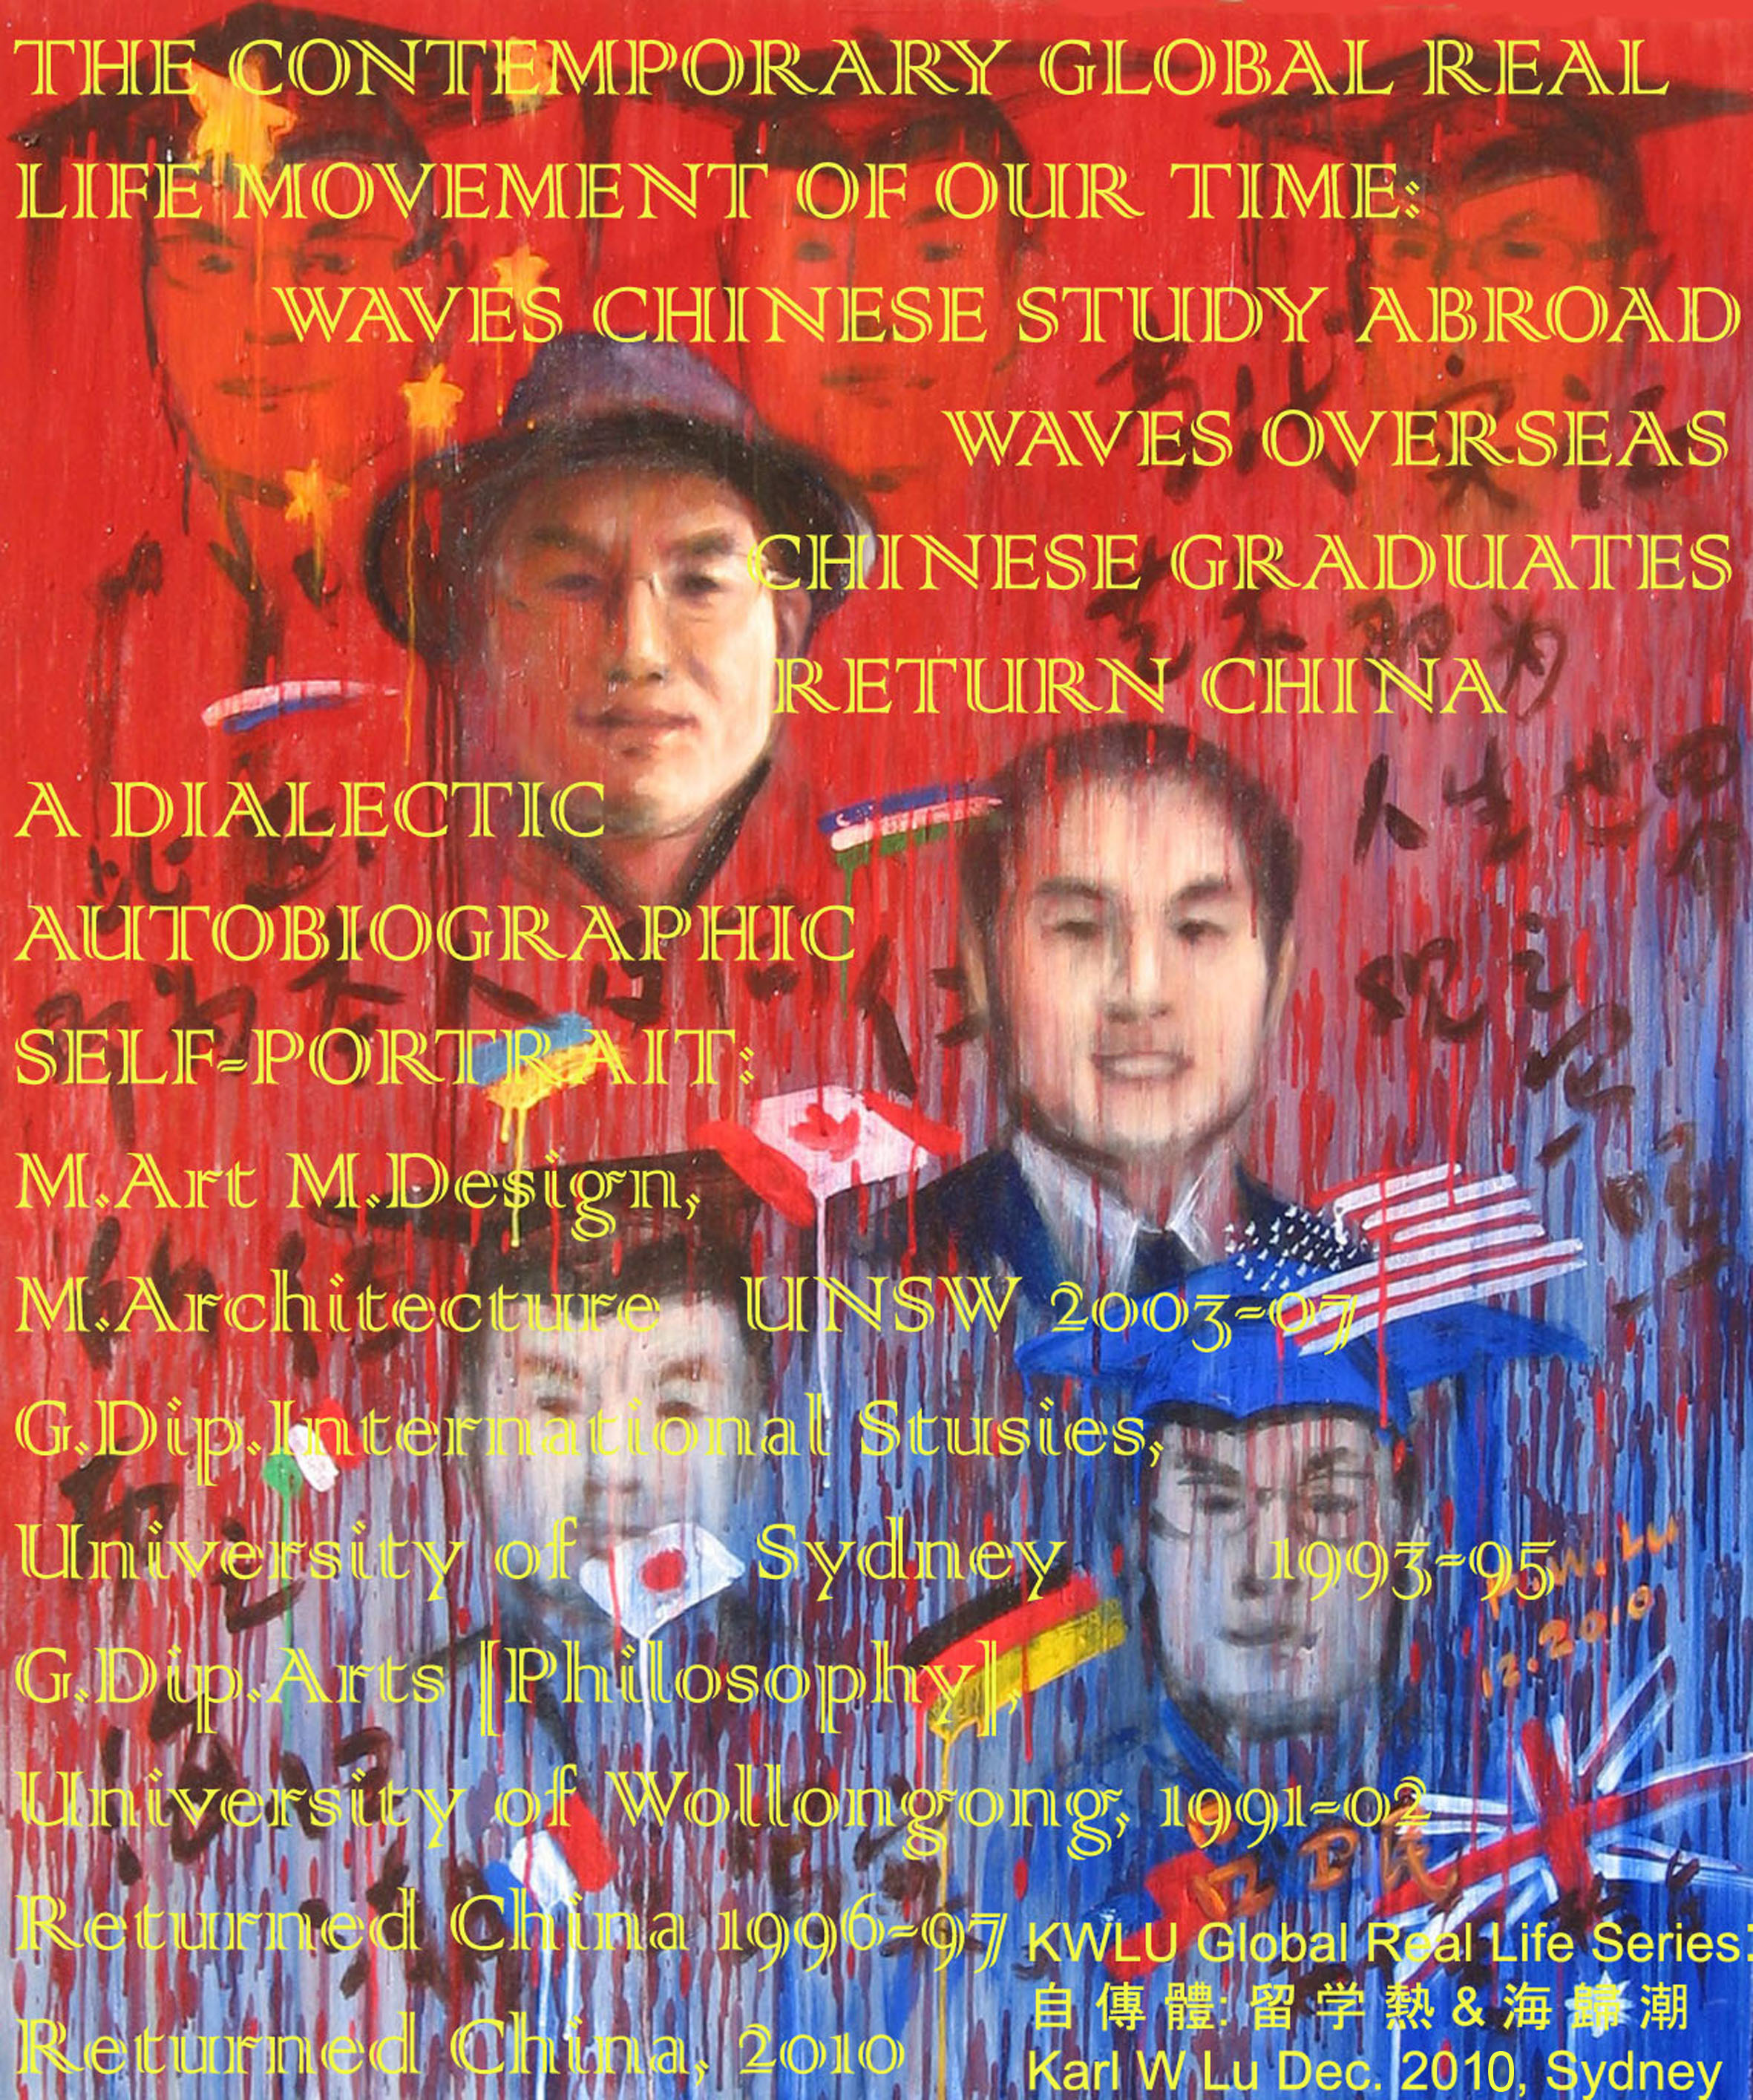 Dialectic Self-Portrait with 5 Postgraduate Degrees & Dips (Positive Global Life Series 2008 -2010)